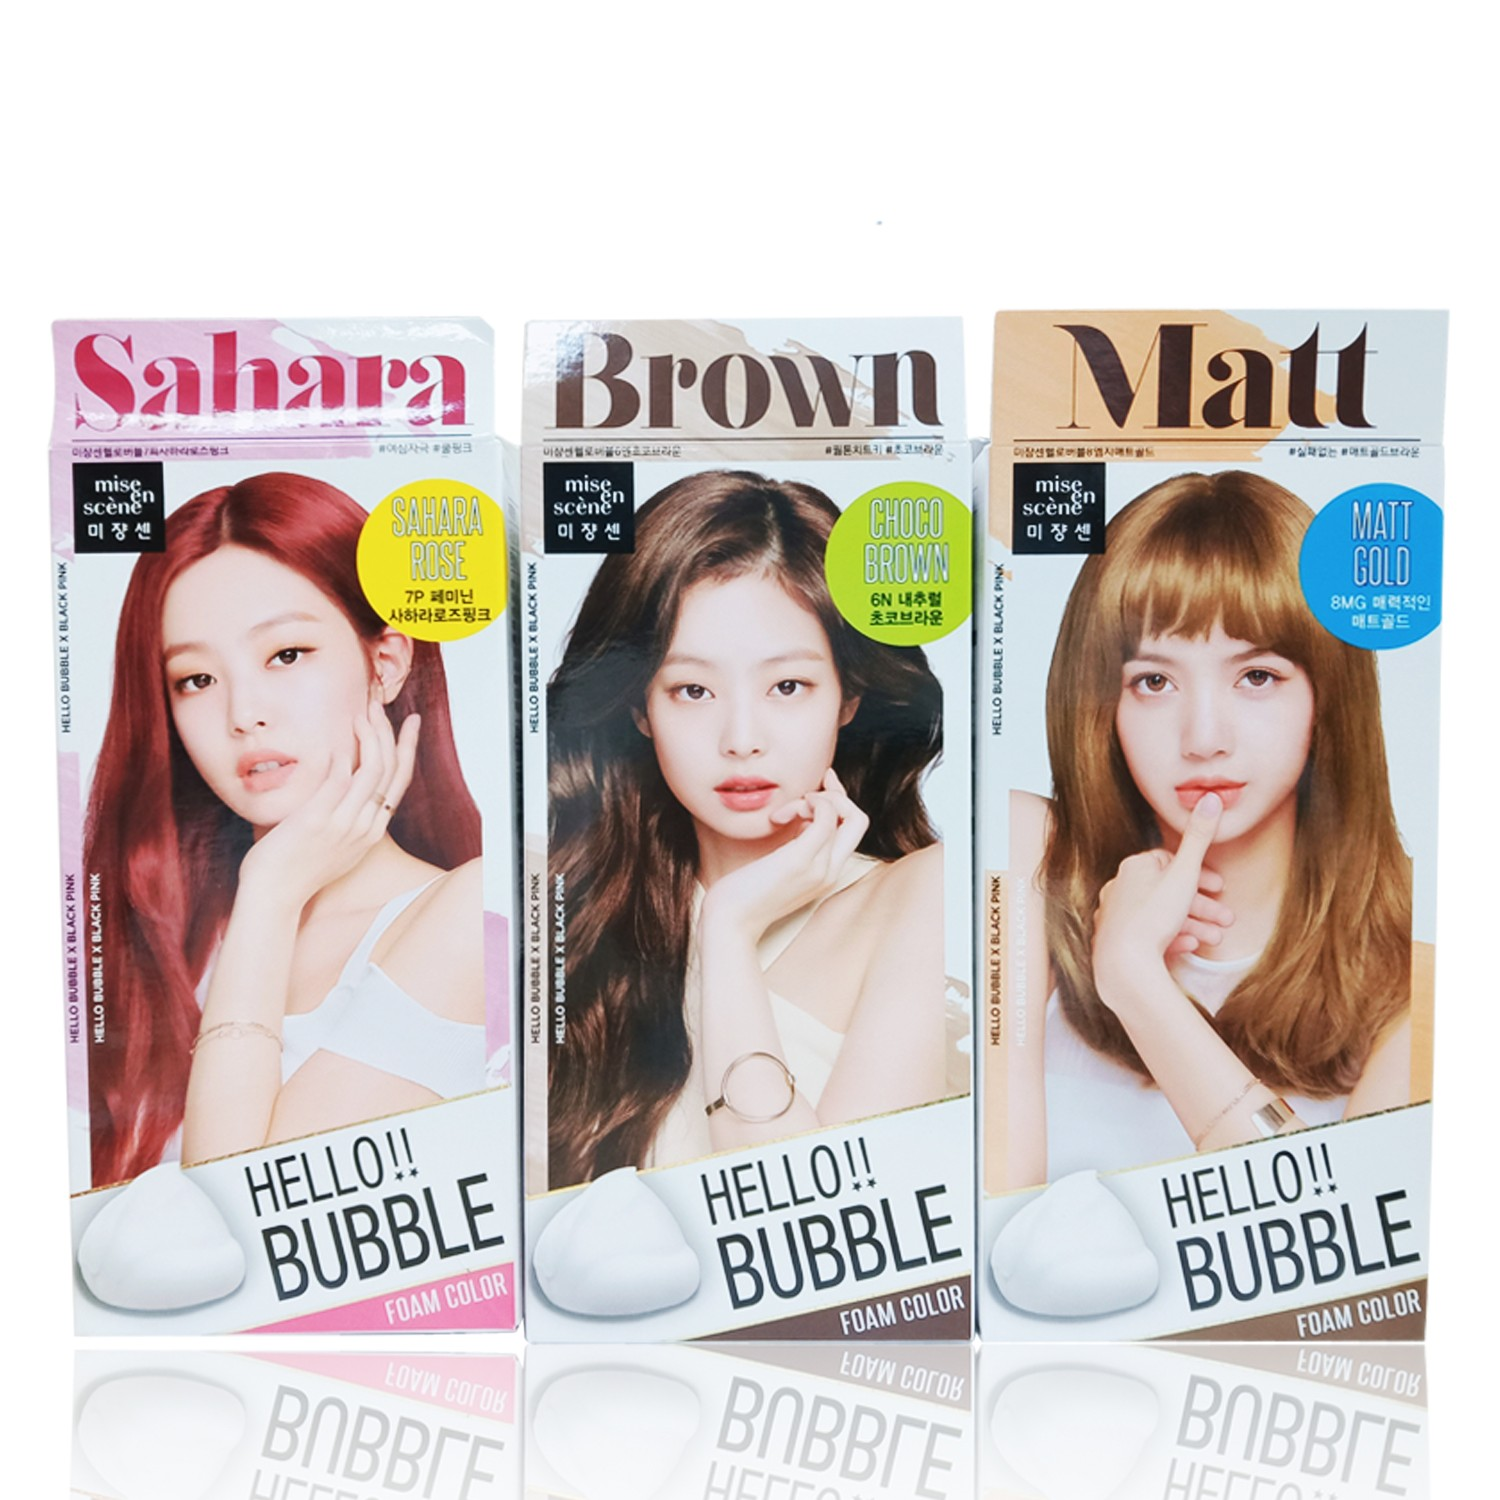 Mise En Scene Hello Bubble X Black Pink Hair Color Foam Color SAHARA,BROWN,MATT